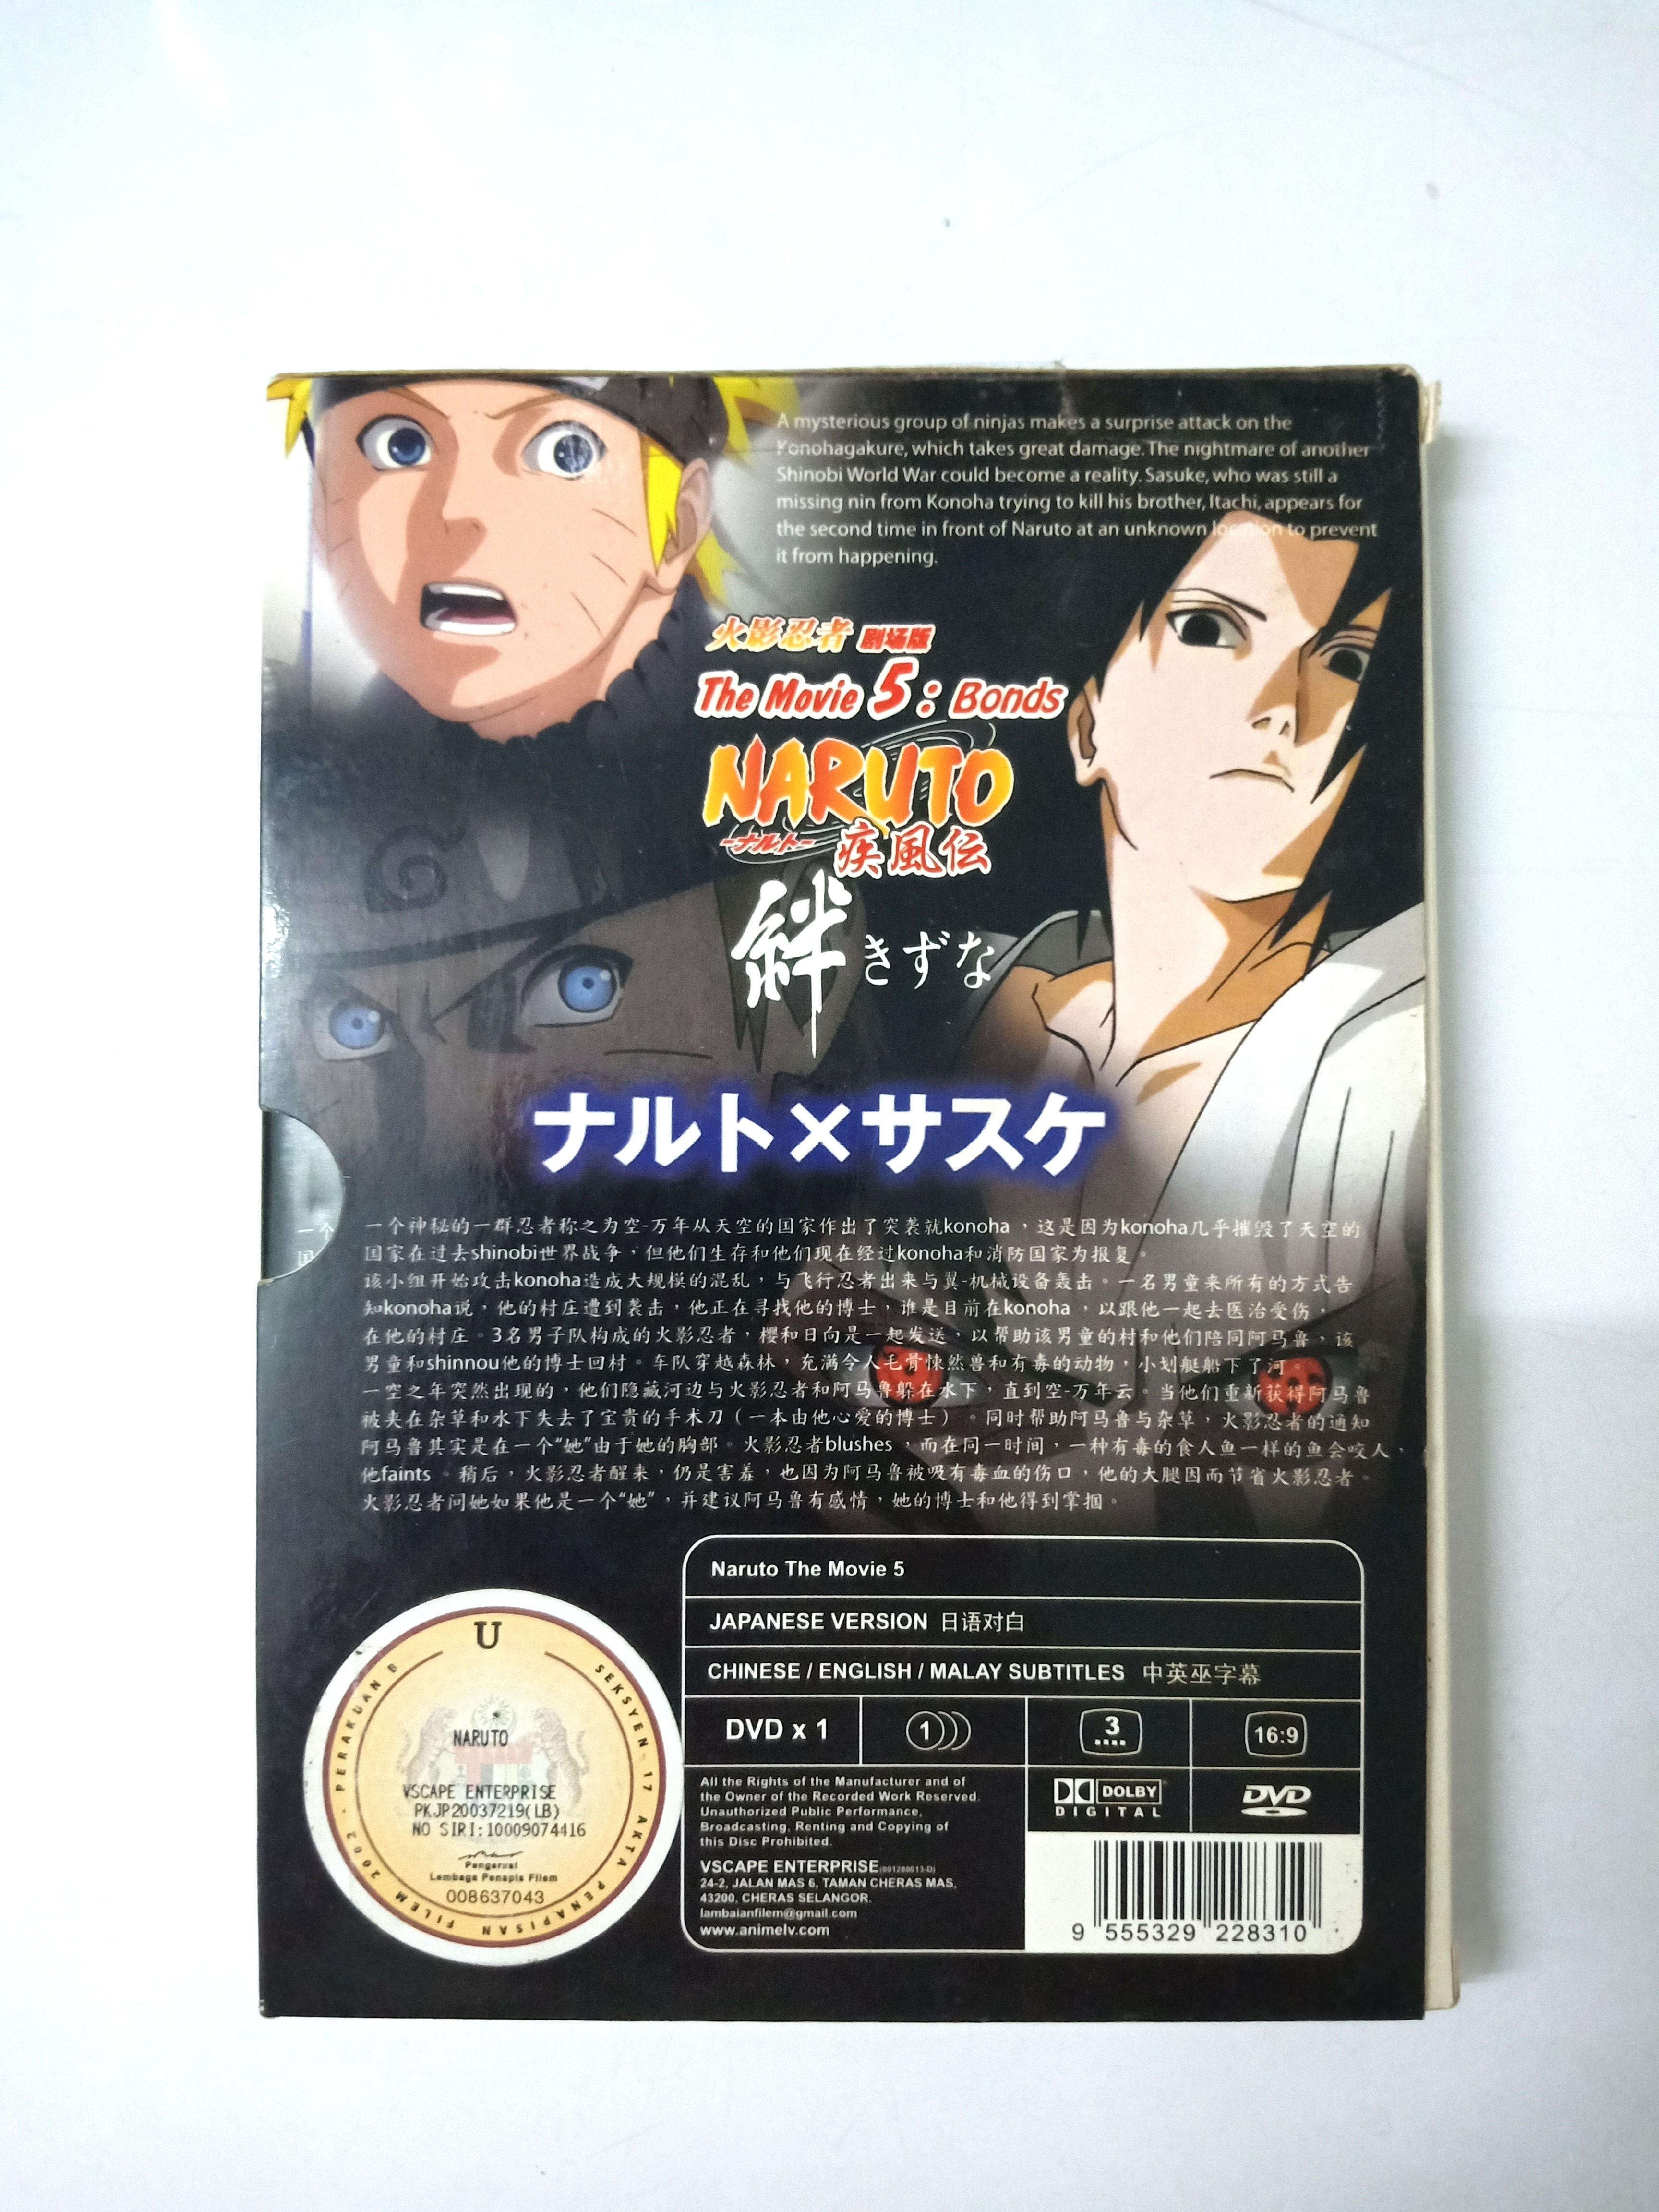 Naruto Shippuden the Movie: Bonds Naruto Shippuden official DVD movie collections #2020Sales